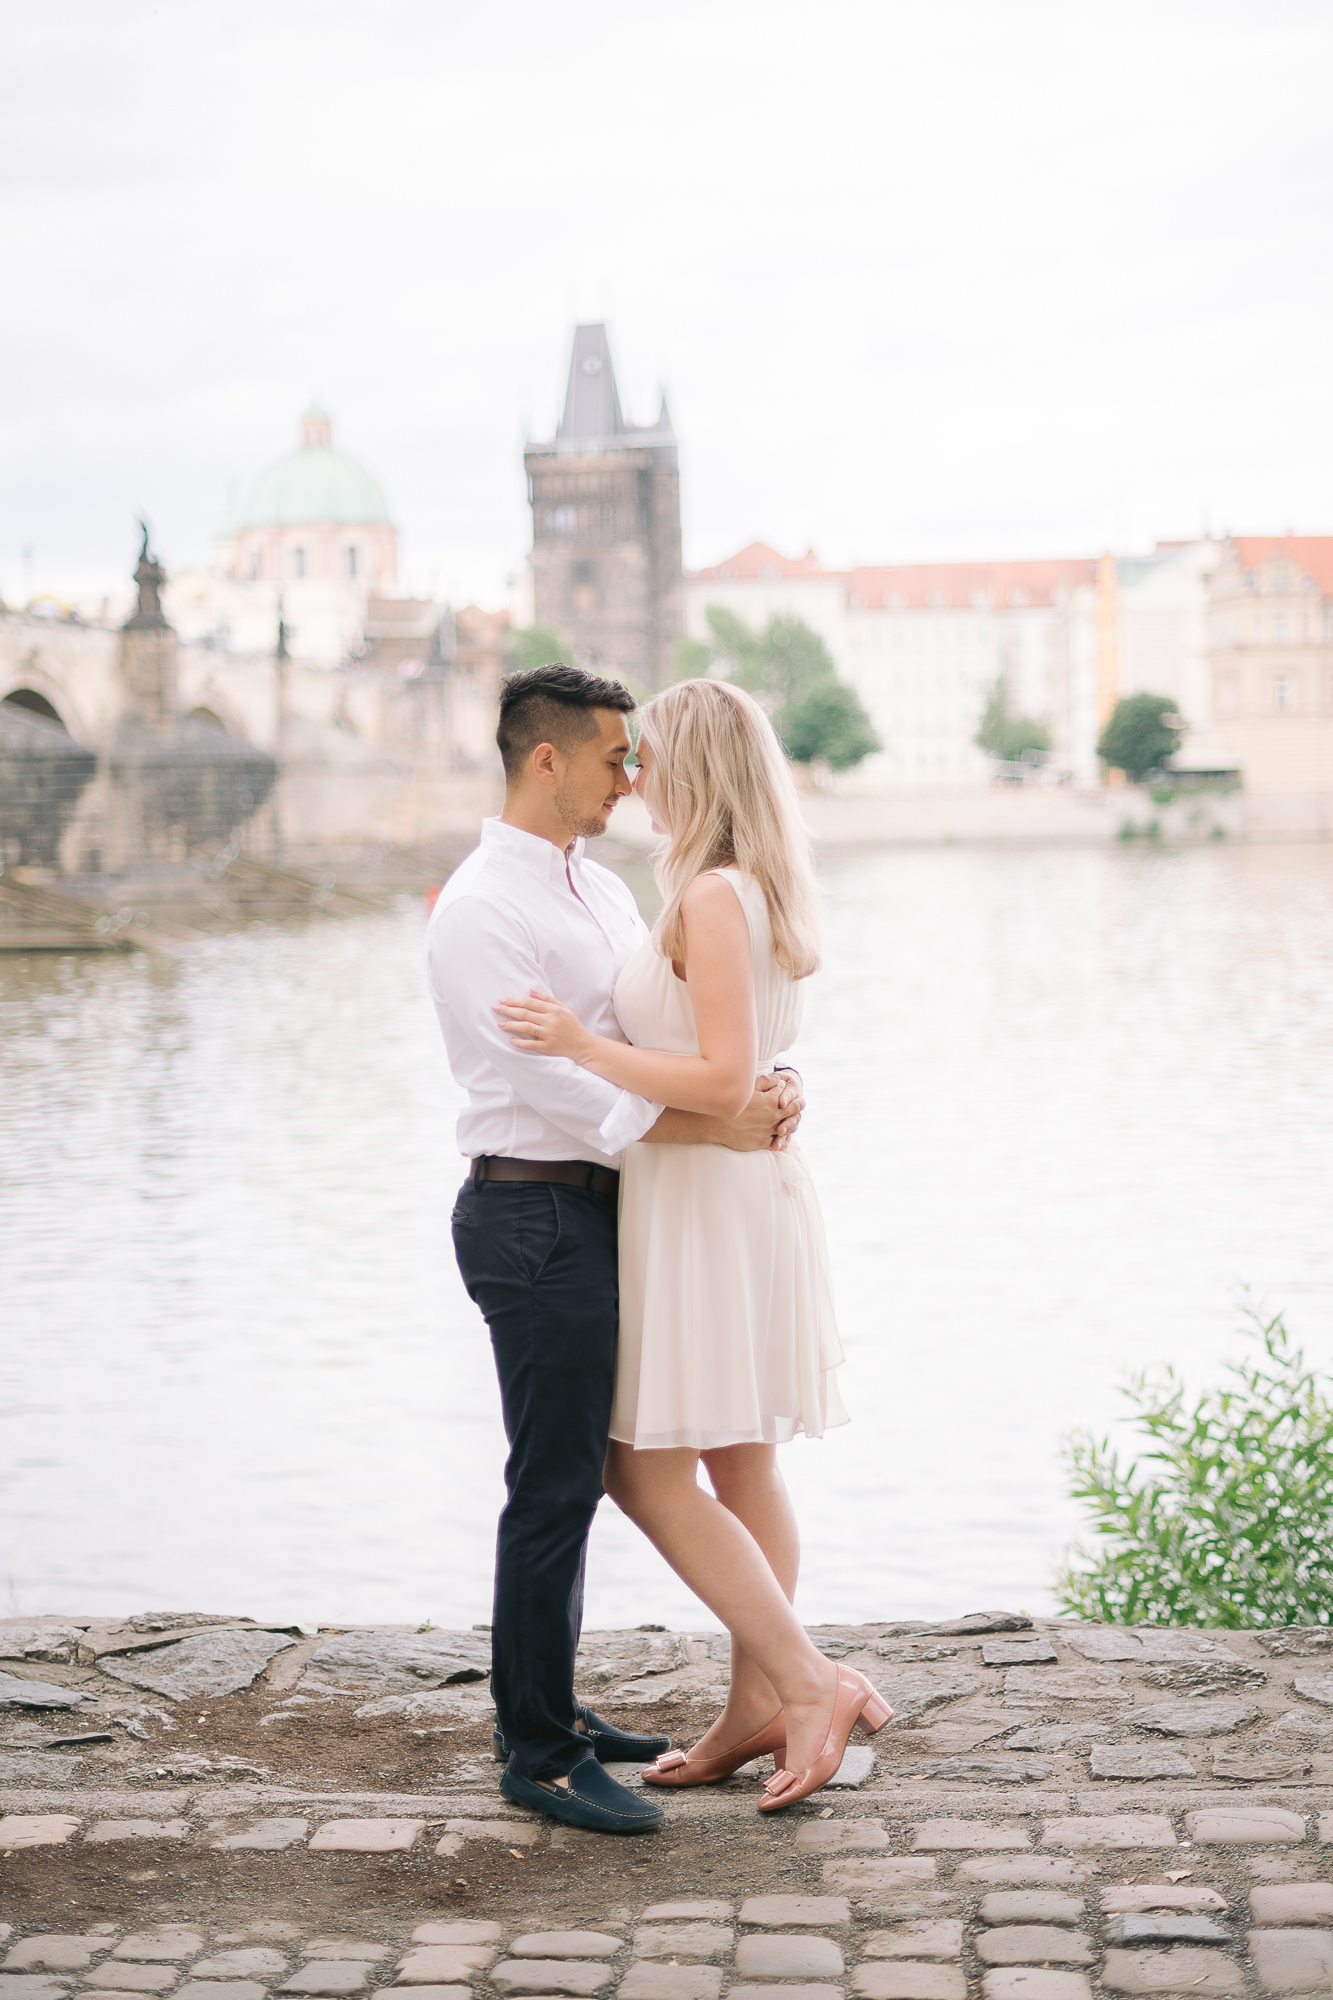 Prague-Wedding-Photography-Matej-Trasak-Engagement-AJ-11.jpg